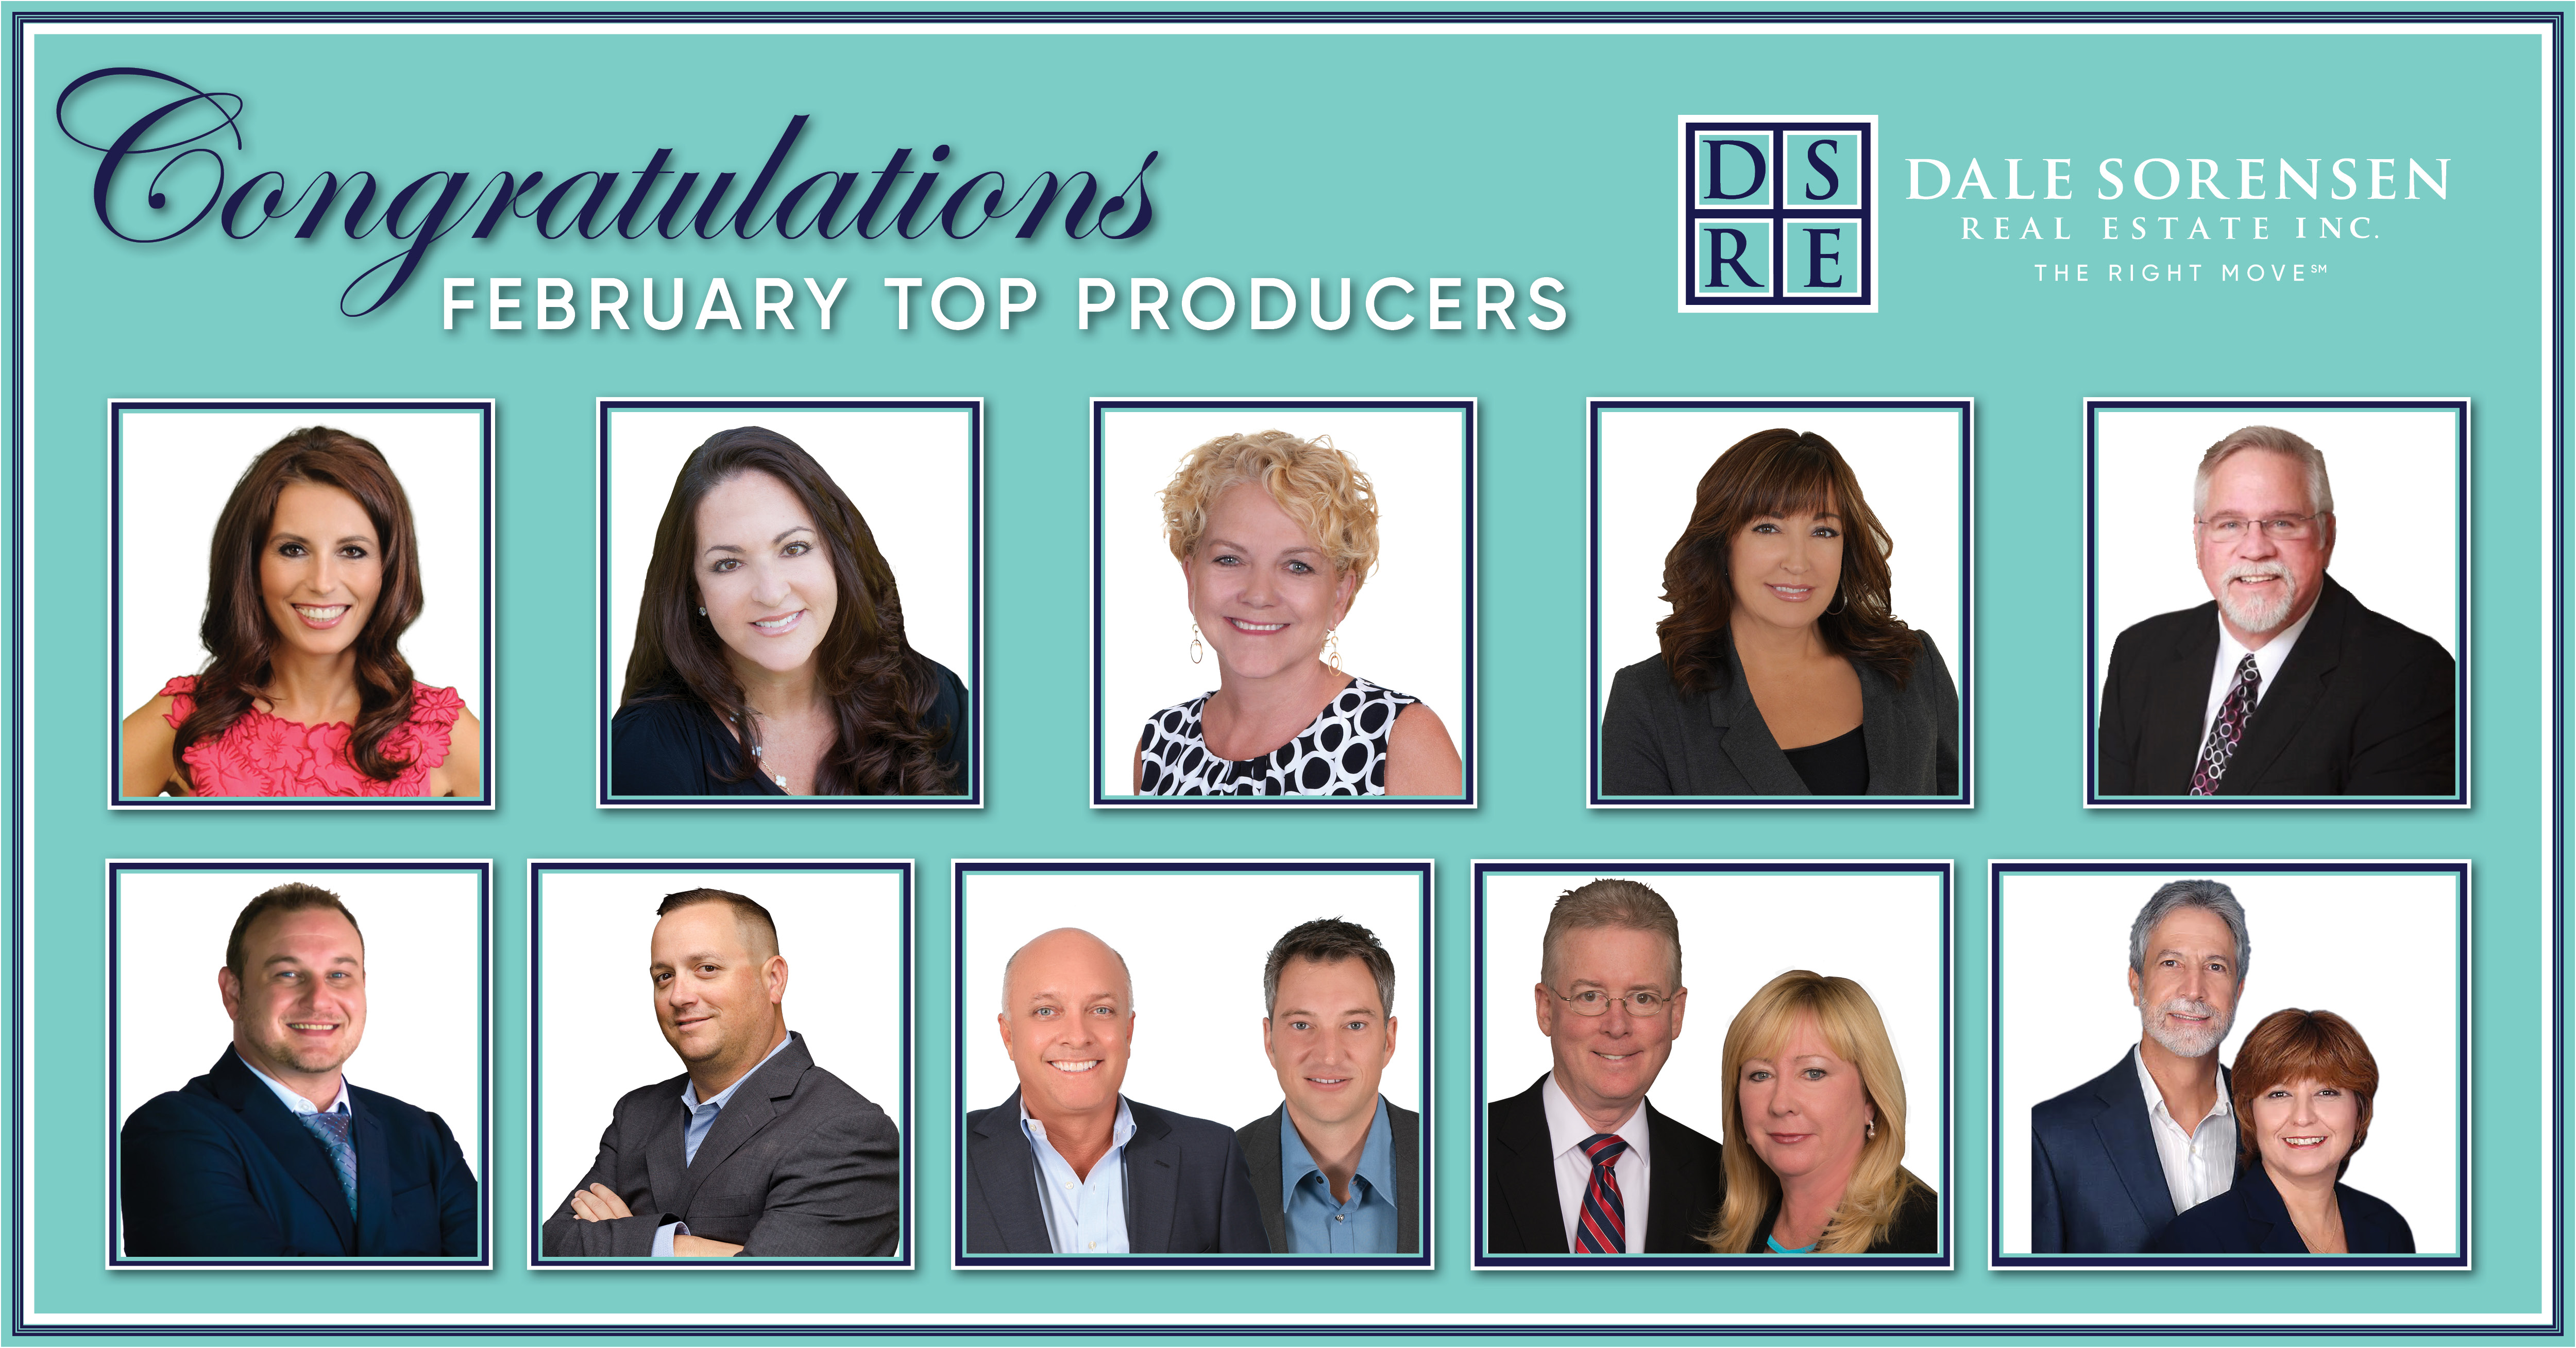 Congratulations February Top Producers DSRE Dale Sorensen Real Estate Inc. THE RIGHT MOVE